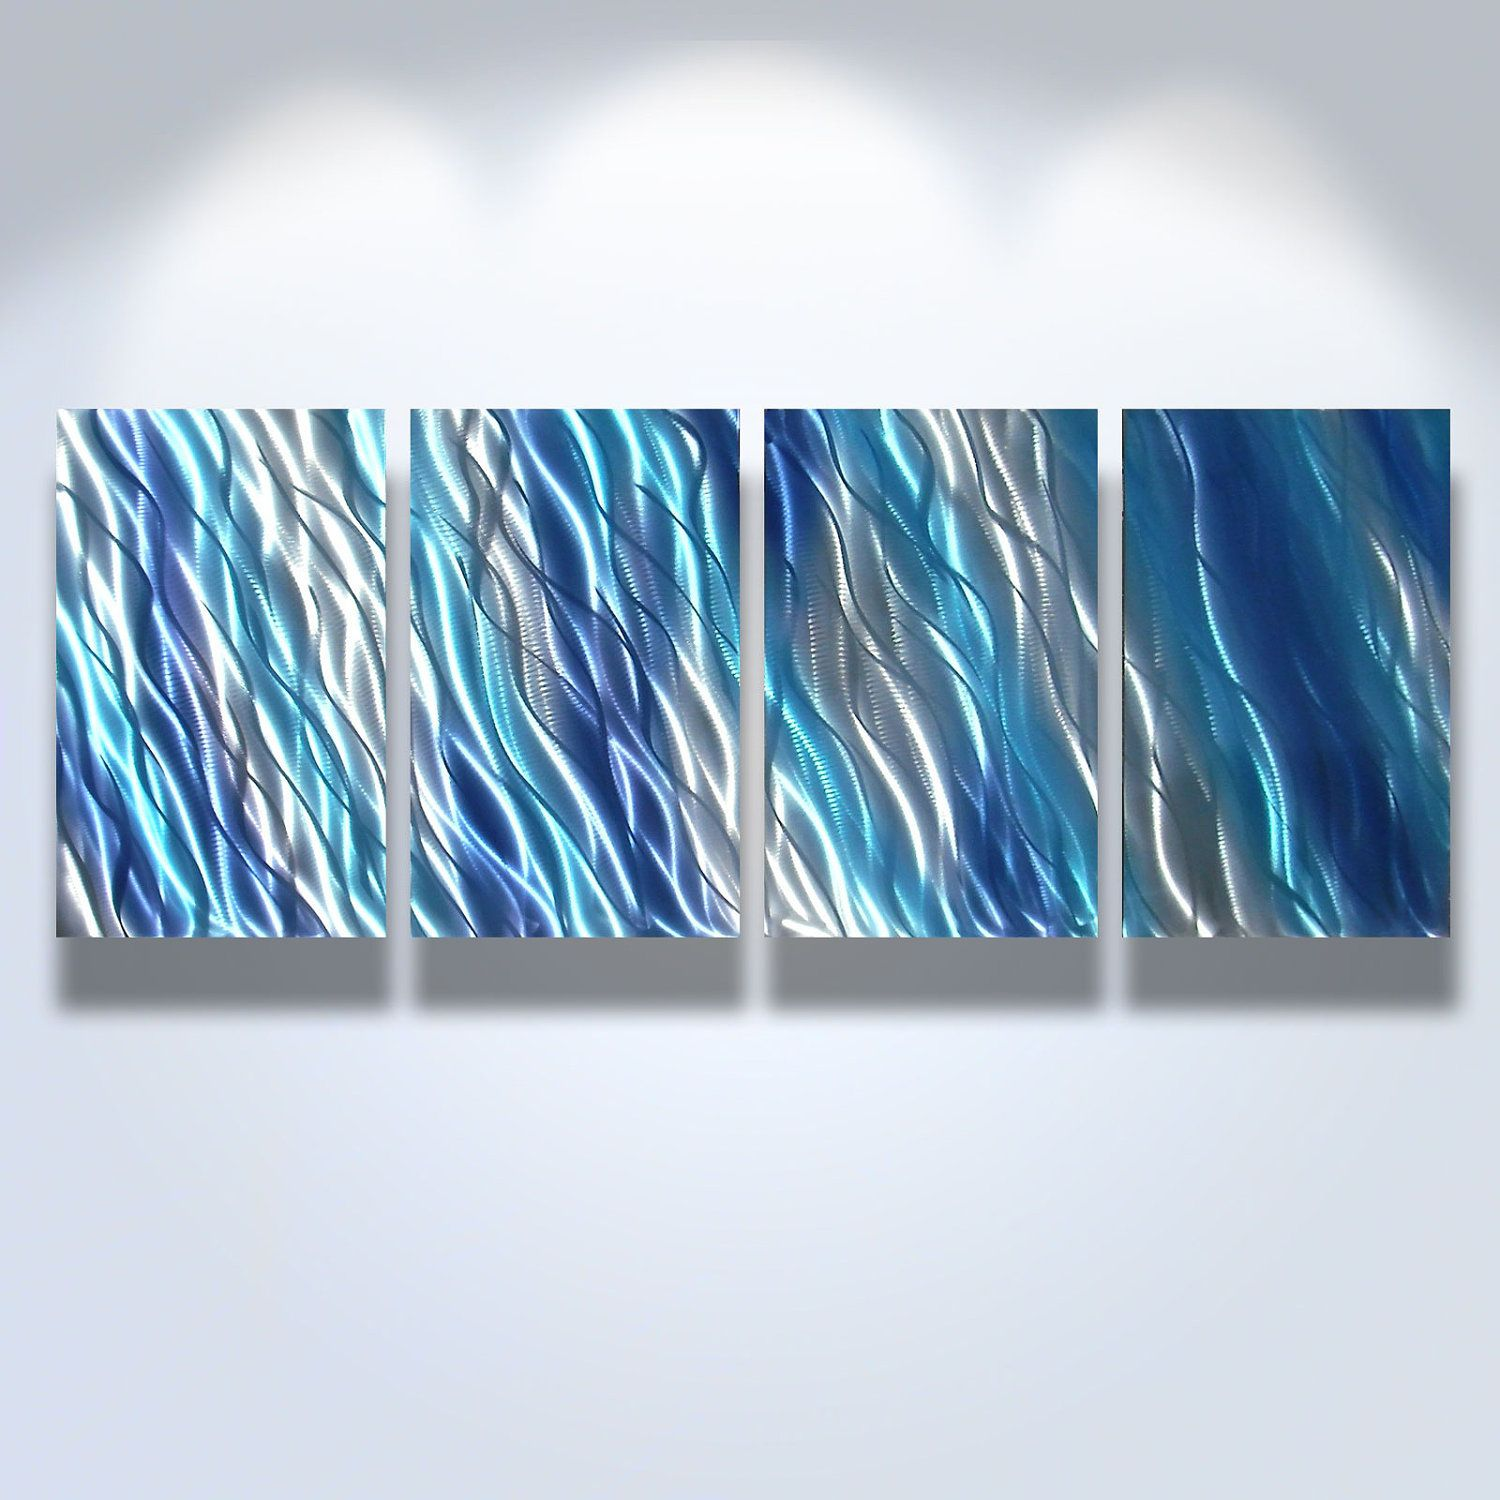 Blue Metal Wall Decor Enchanting Metal Wall Art Decor Abstract Contemporary Modern Sculpture Review